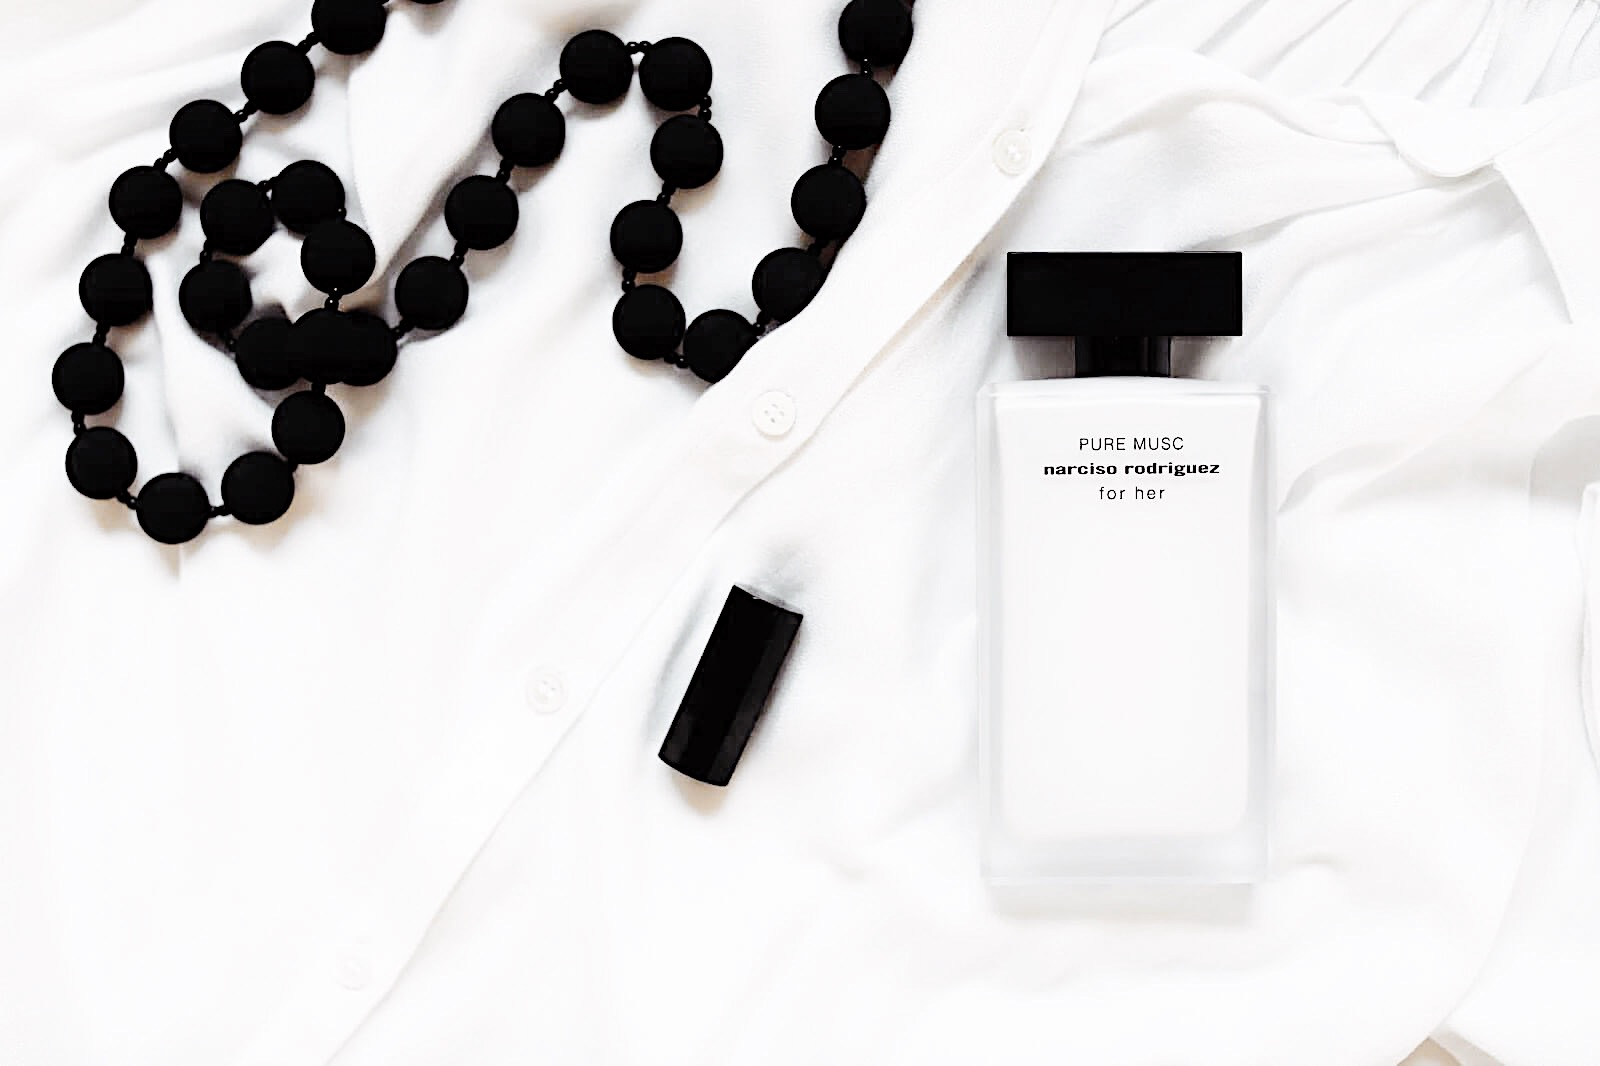 narciso-rodriguez-for-her-pure-musc-parfum-printemps-2019-avis-test-critique